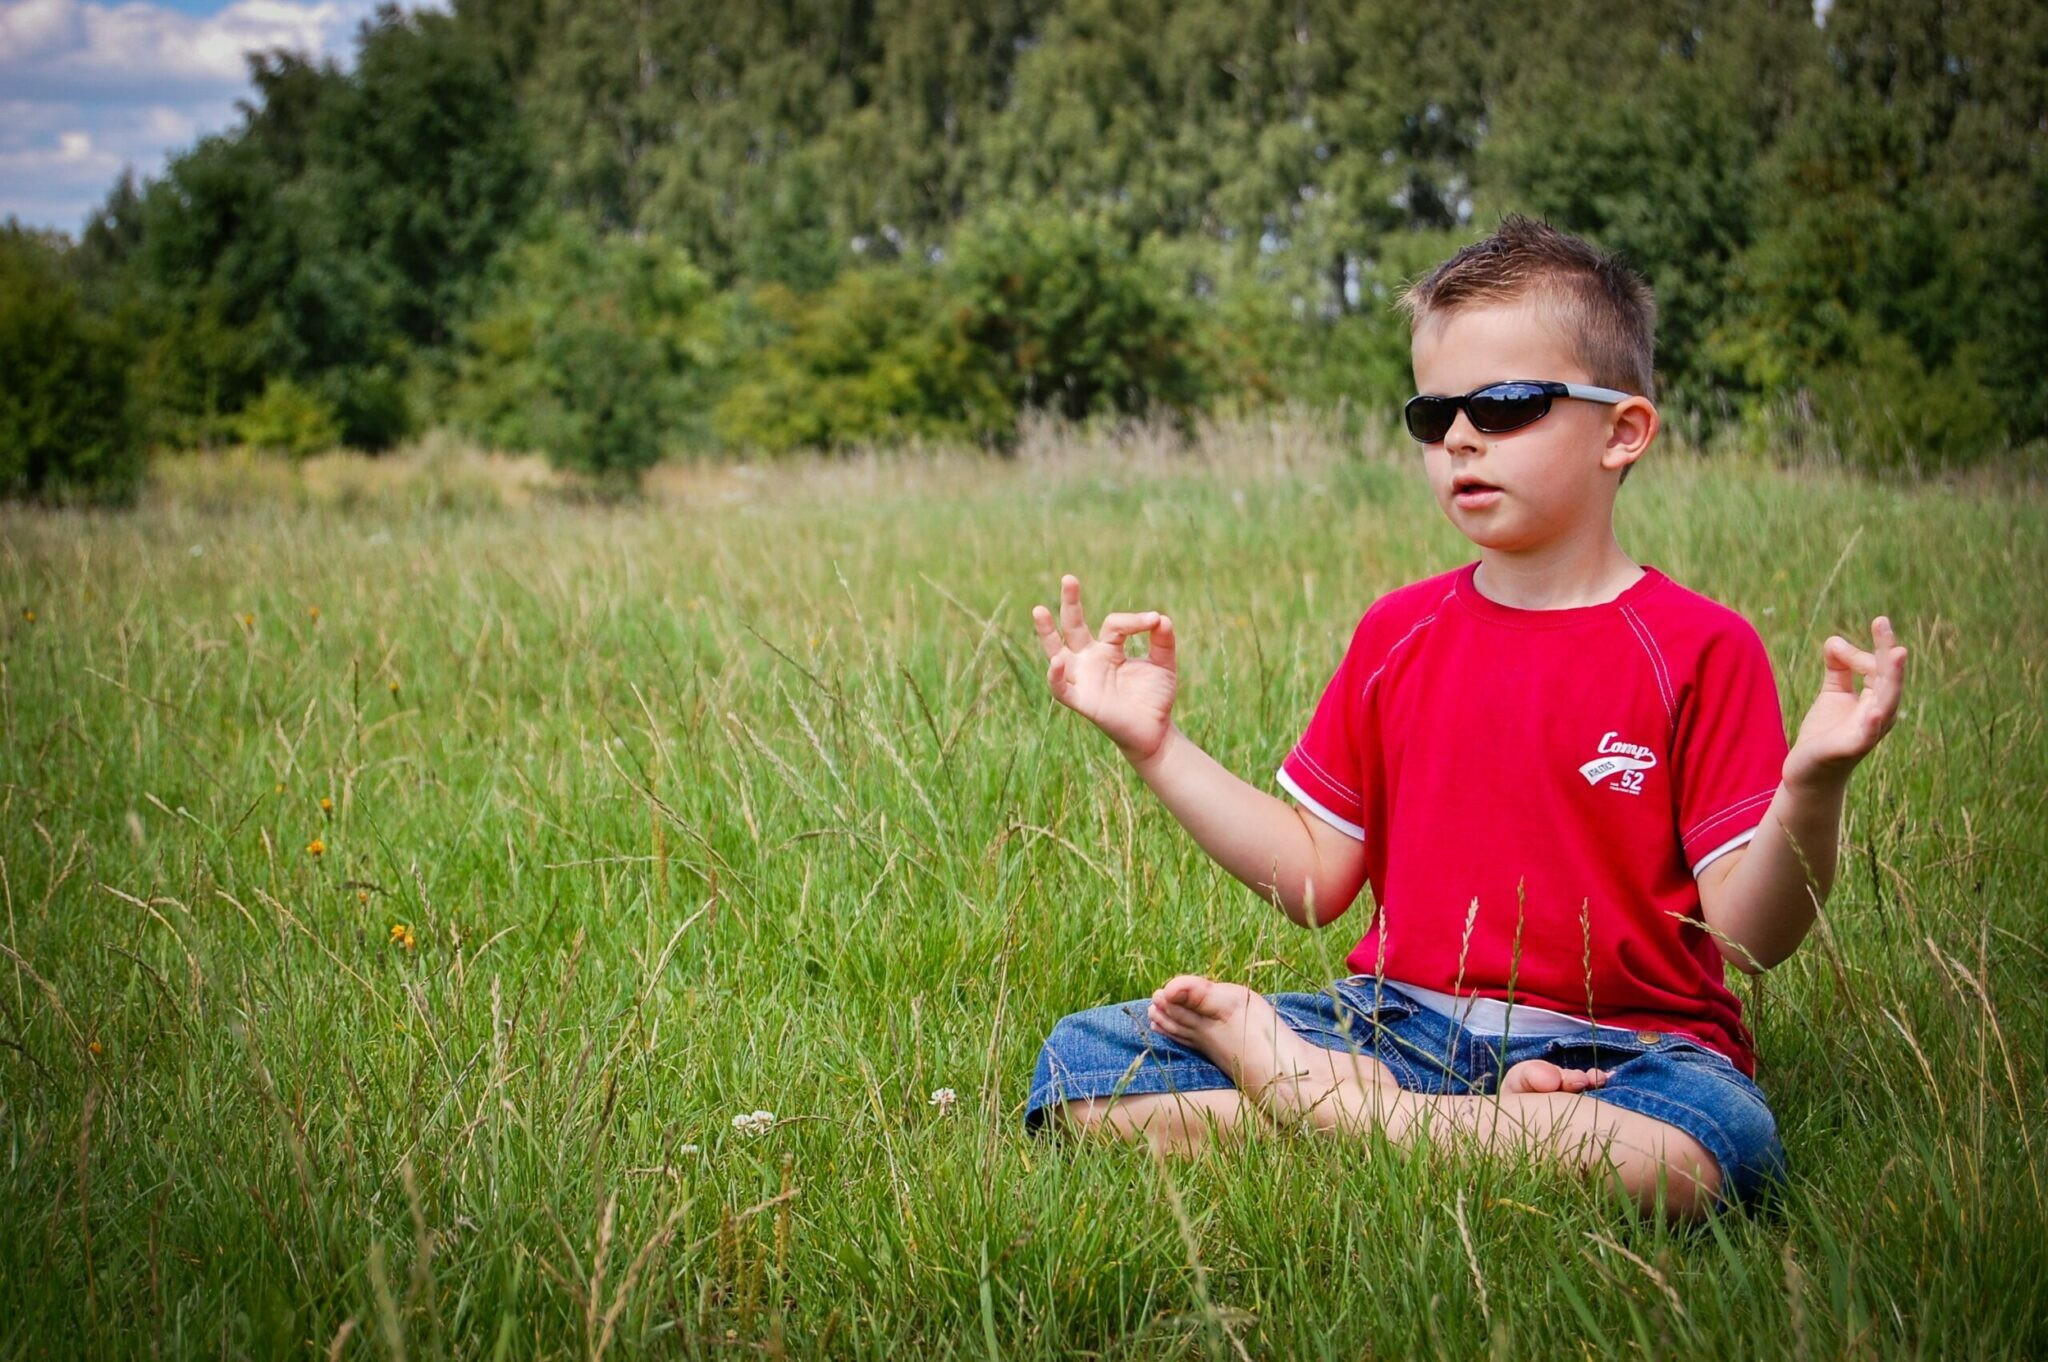 Small boy in sunglasses meditating